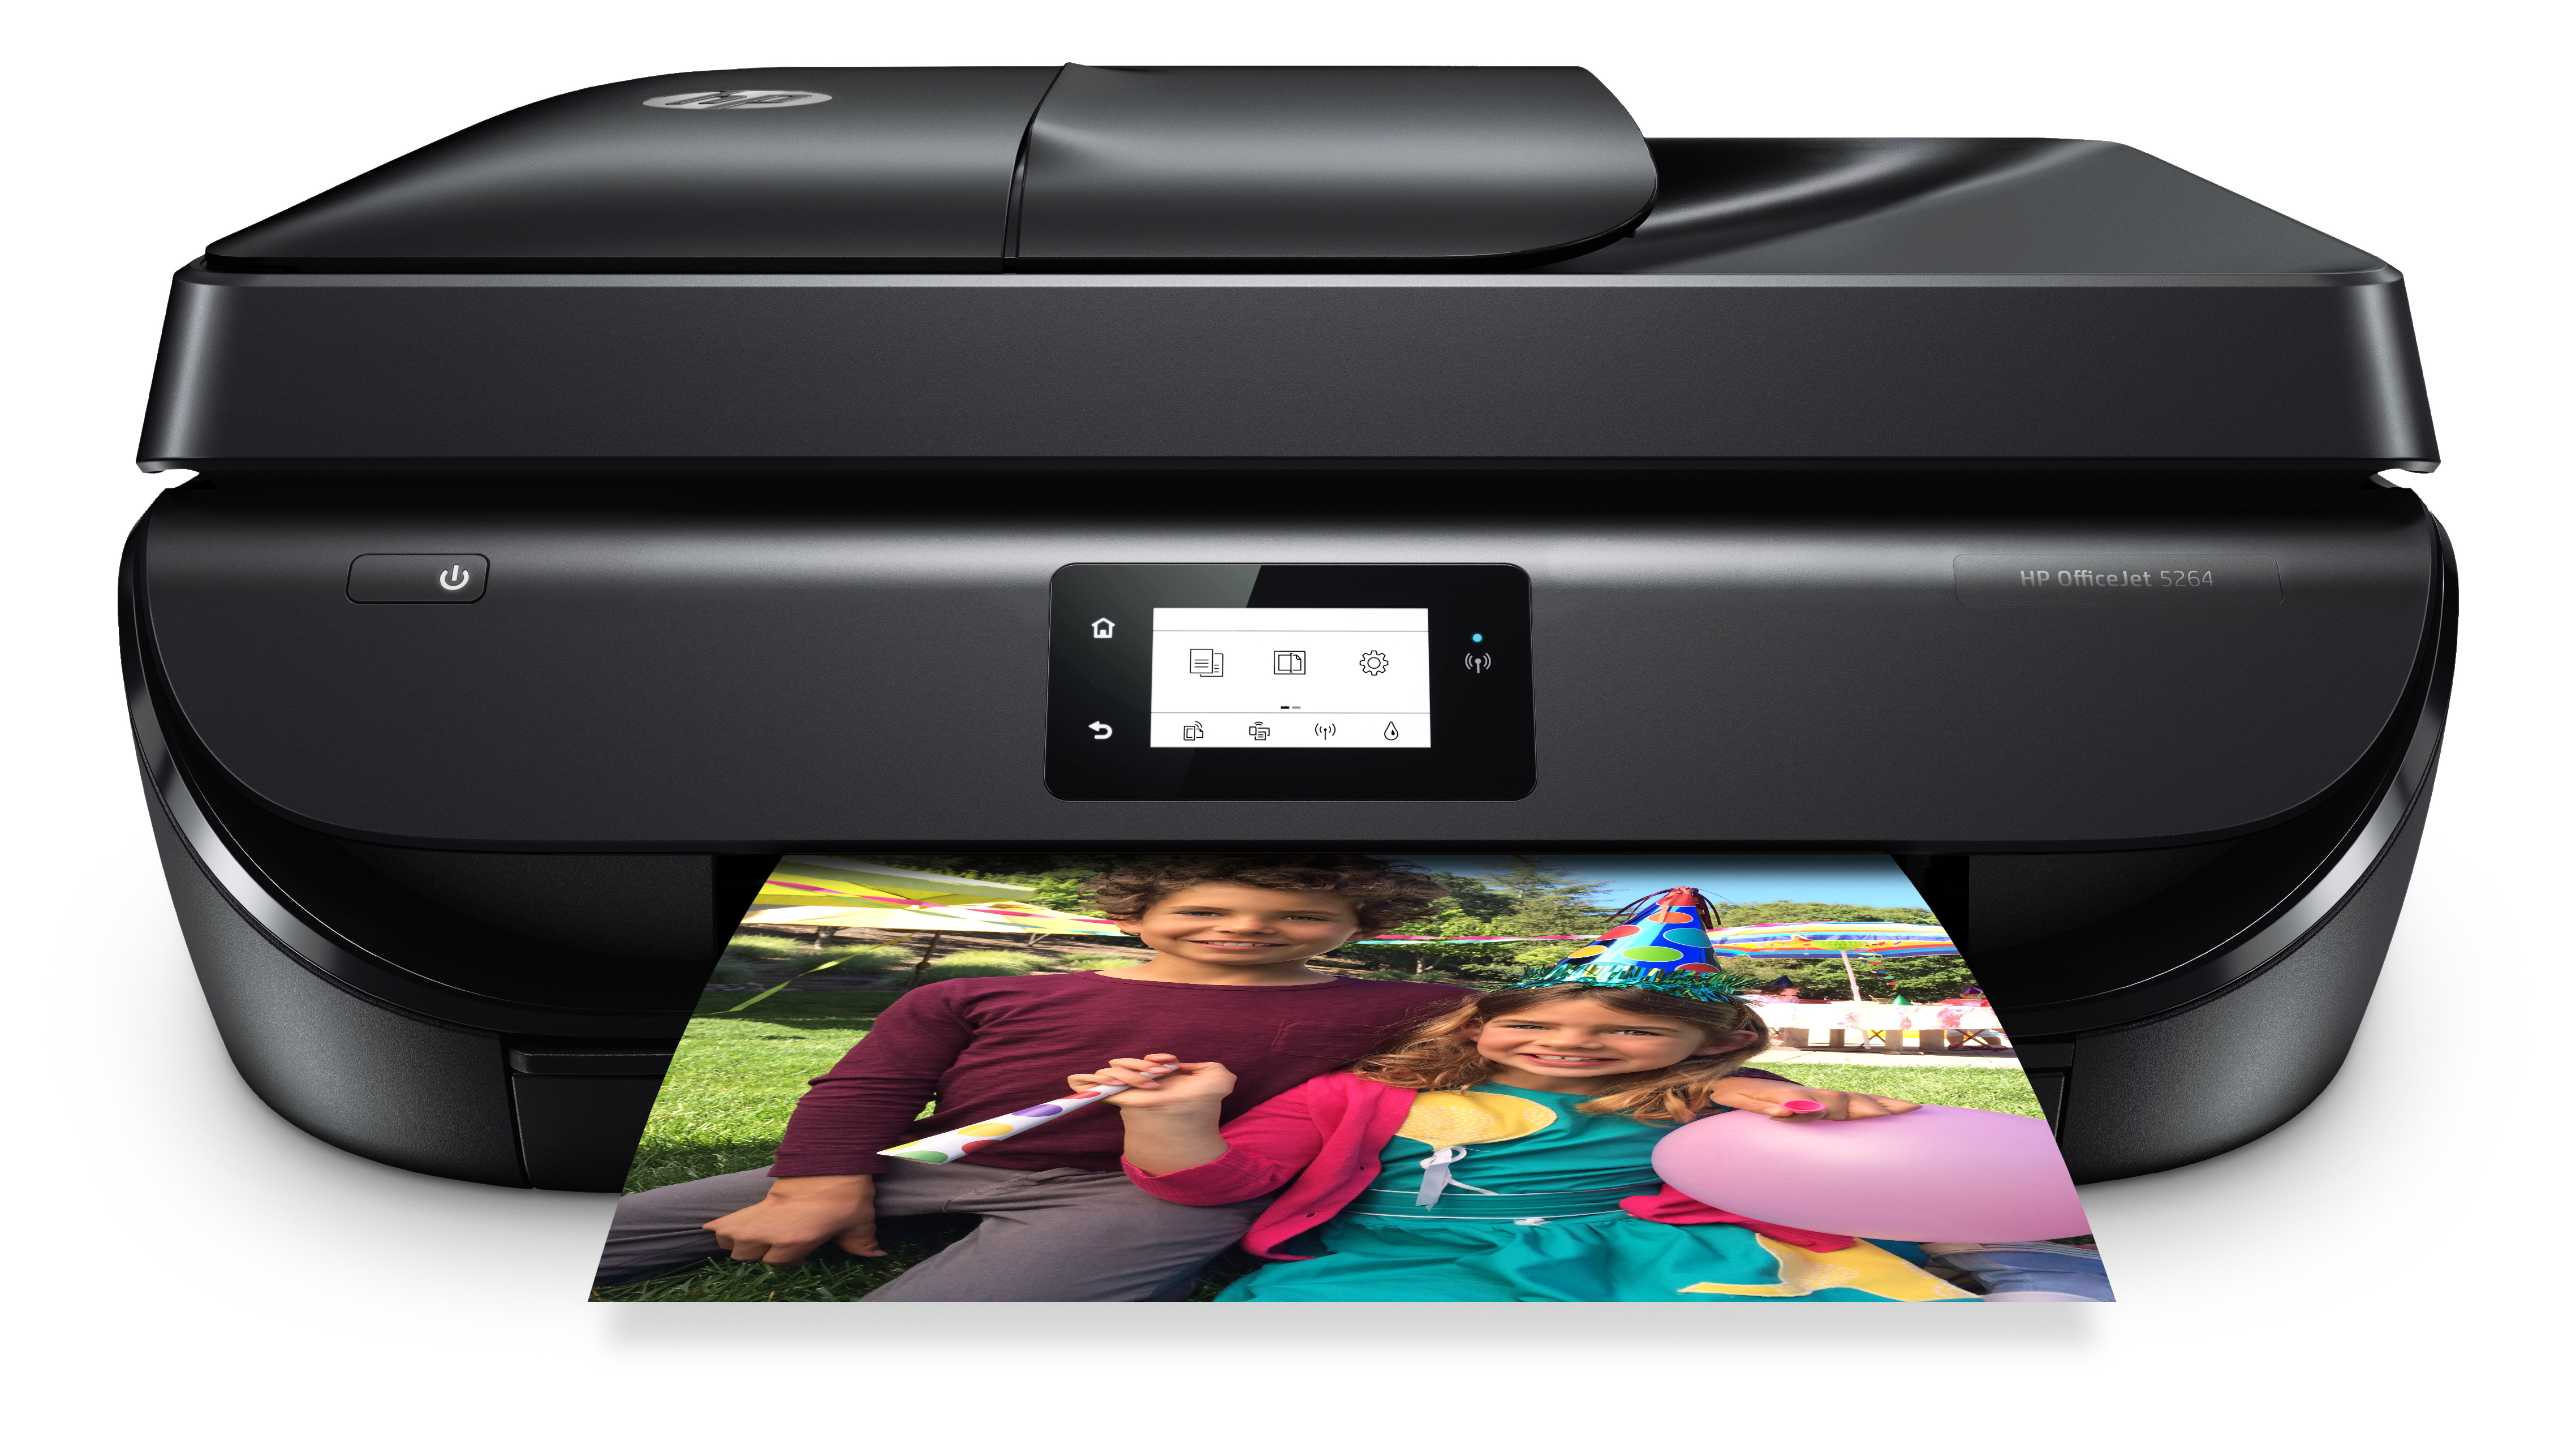 HP OfficeJet 5264 All-in-One Printer